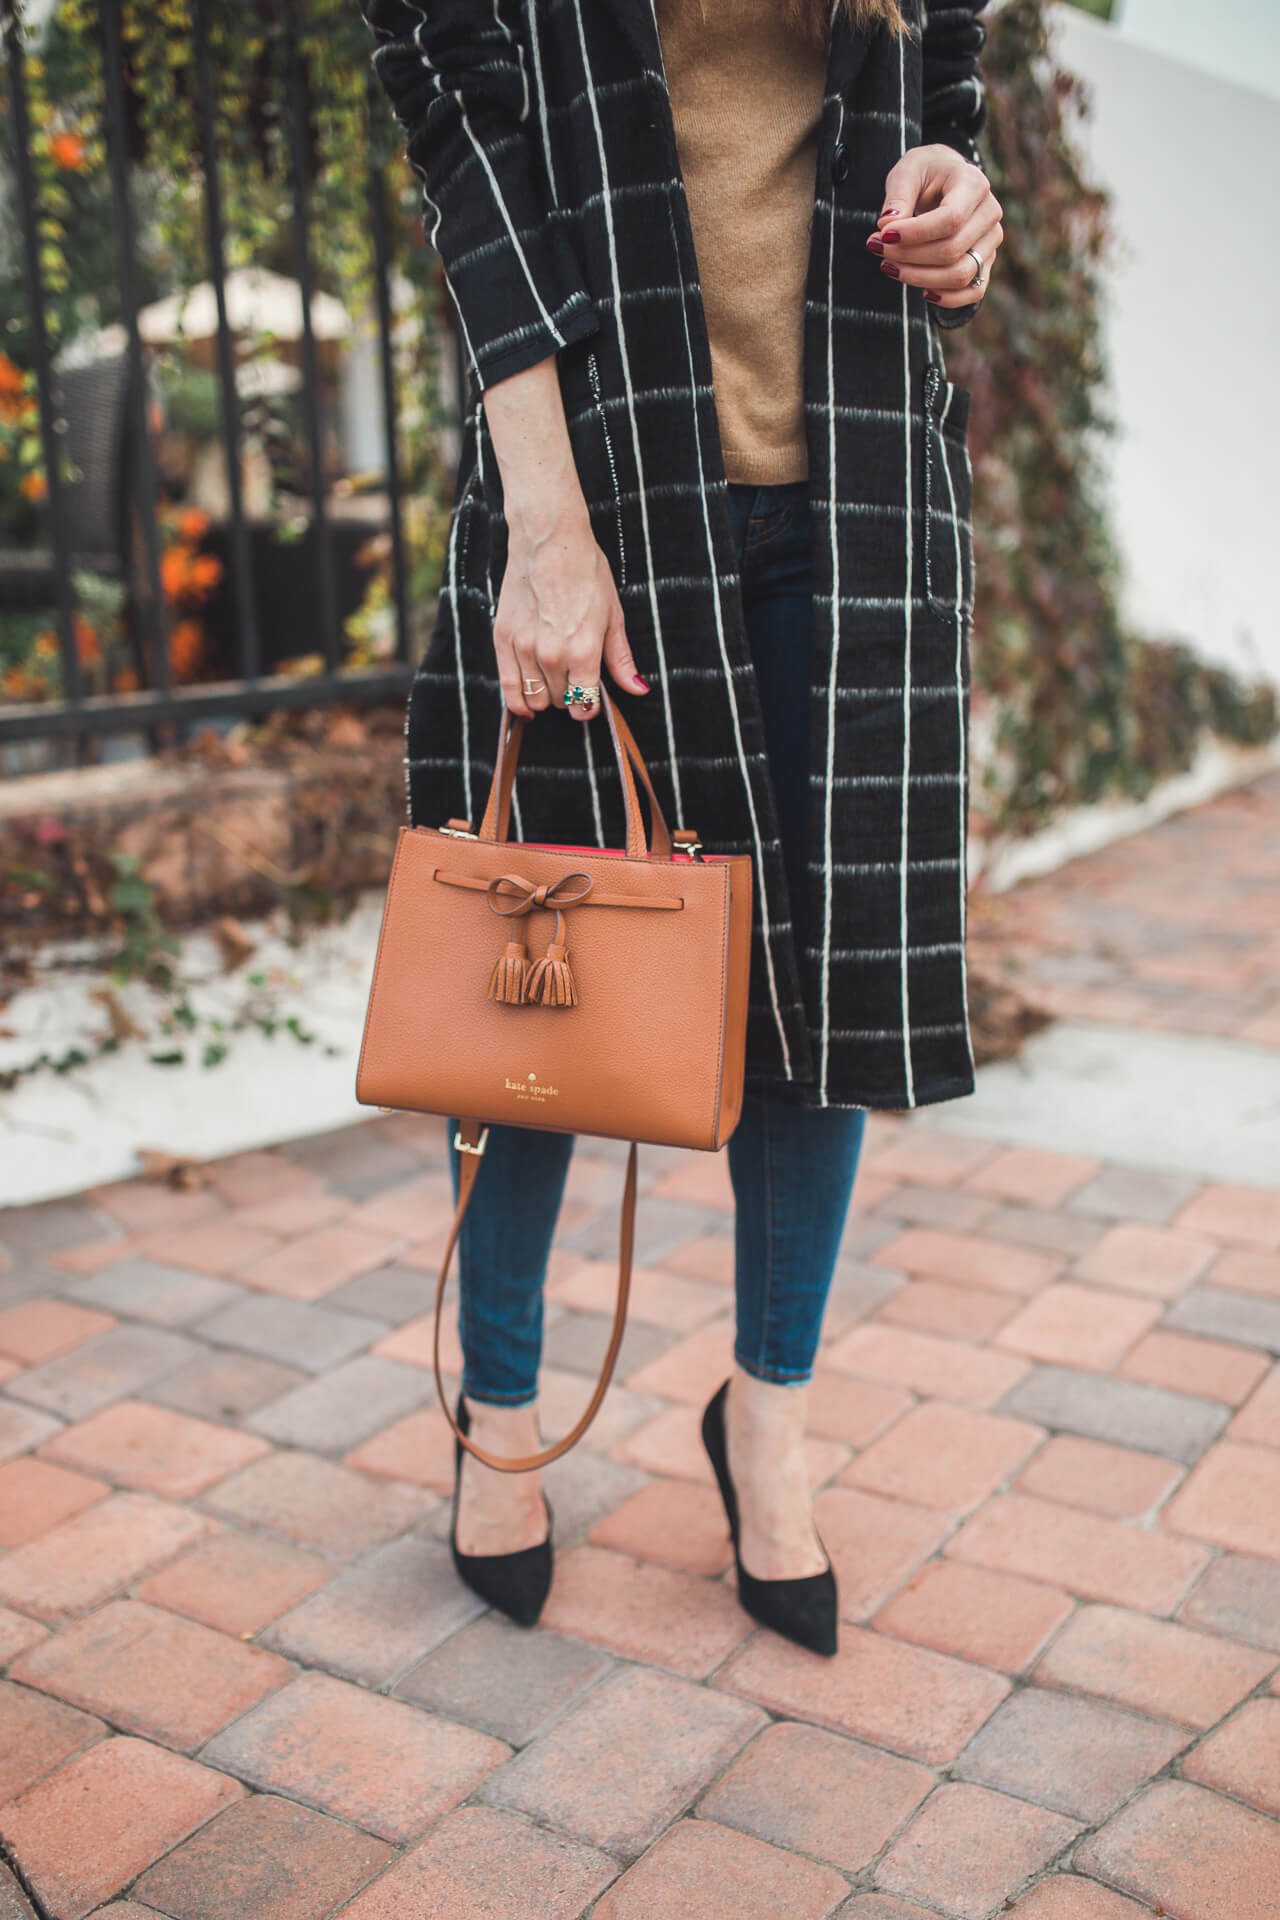 styling jeans and heels for fall